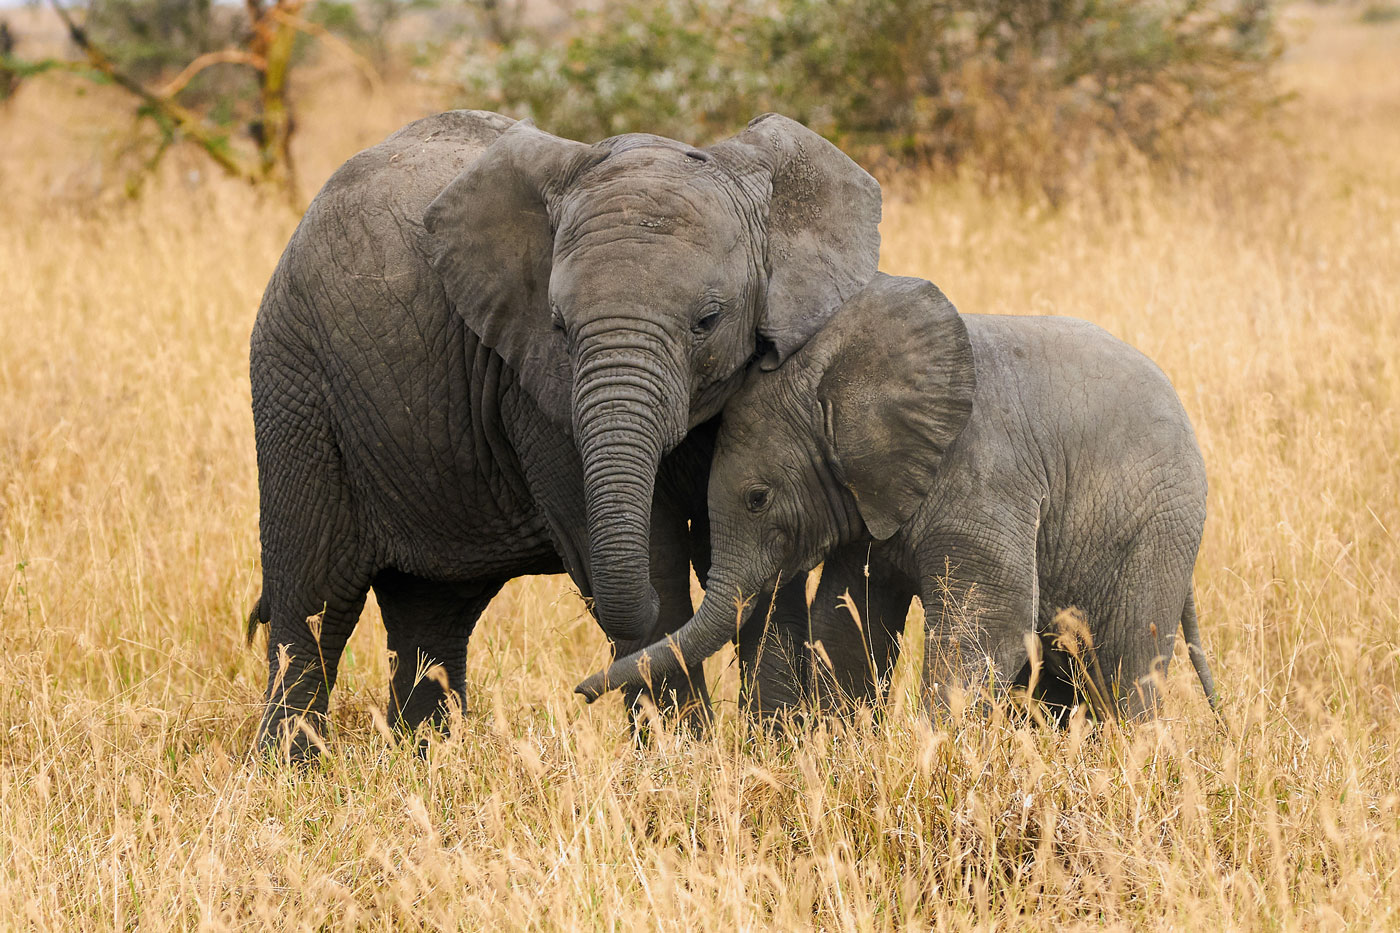 Two young brother elephants born without tusks in Tanzania